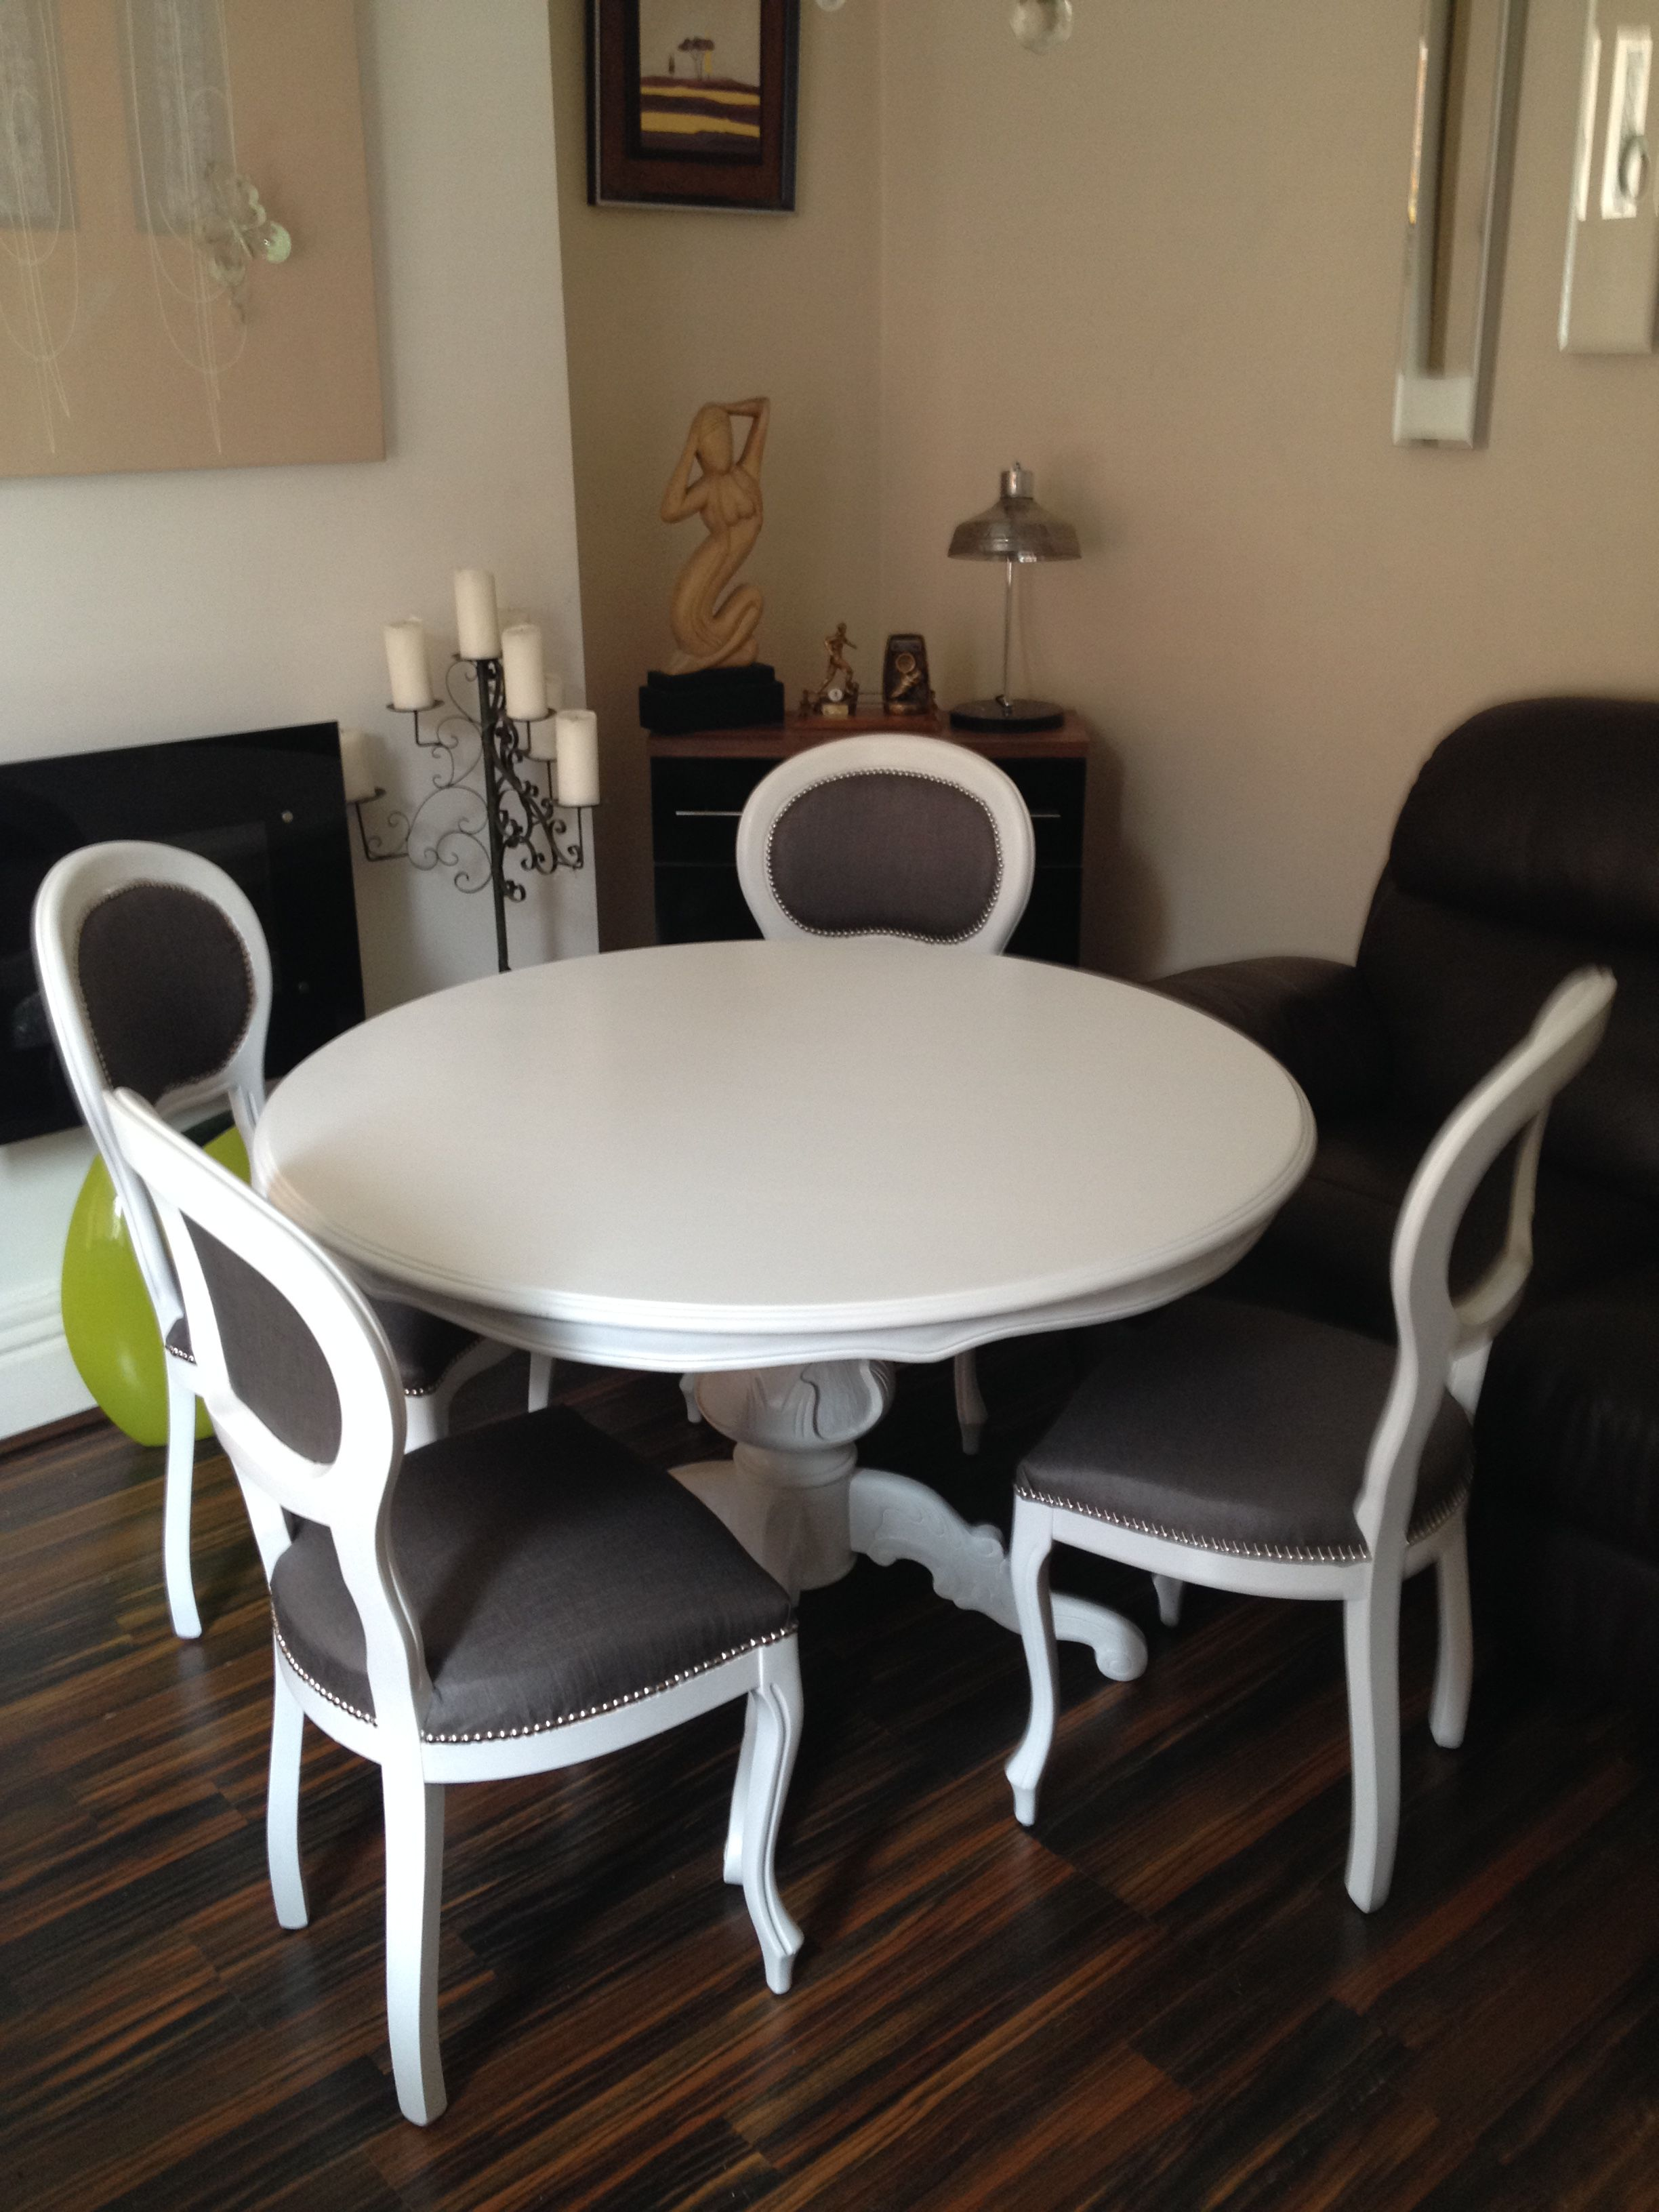 Italian style reproduction dining table and chairs painted frosted